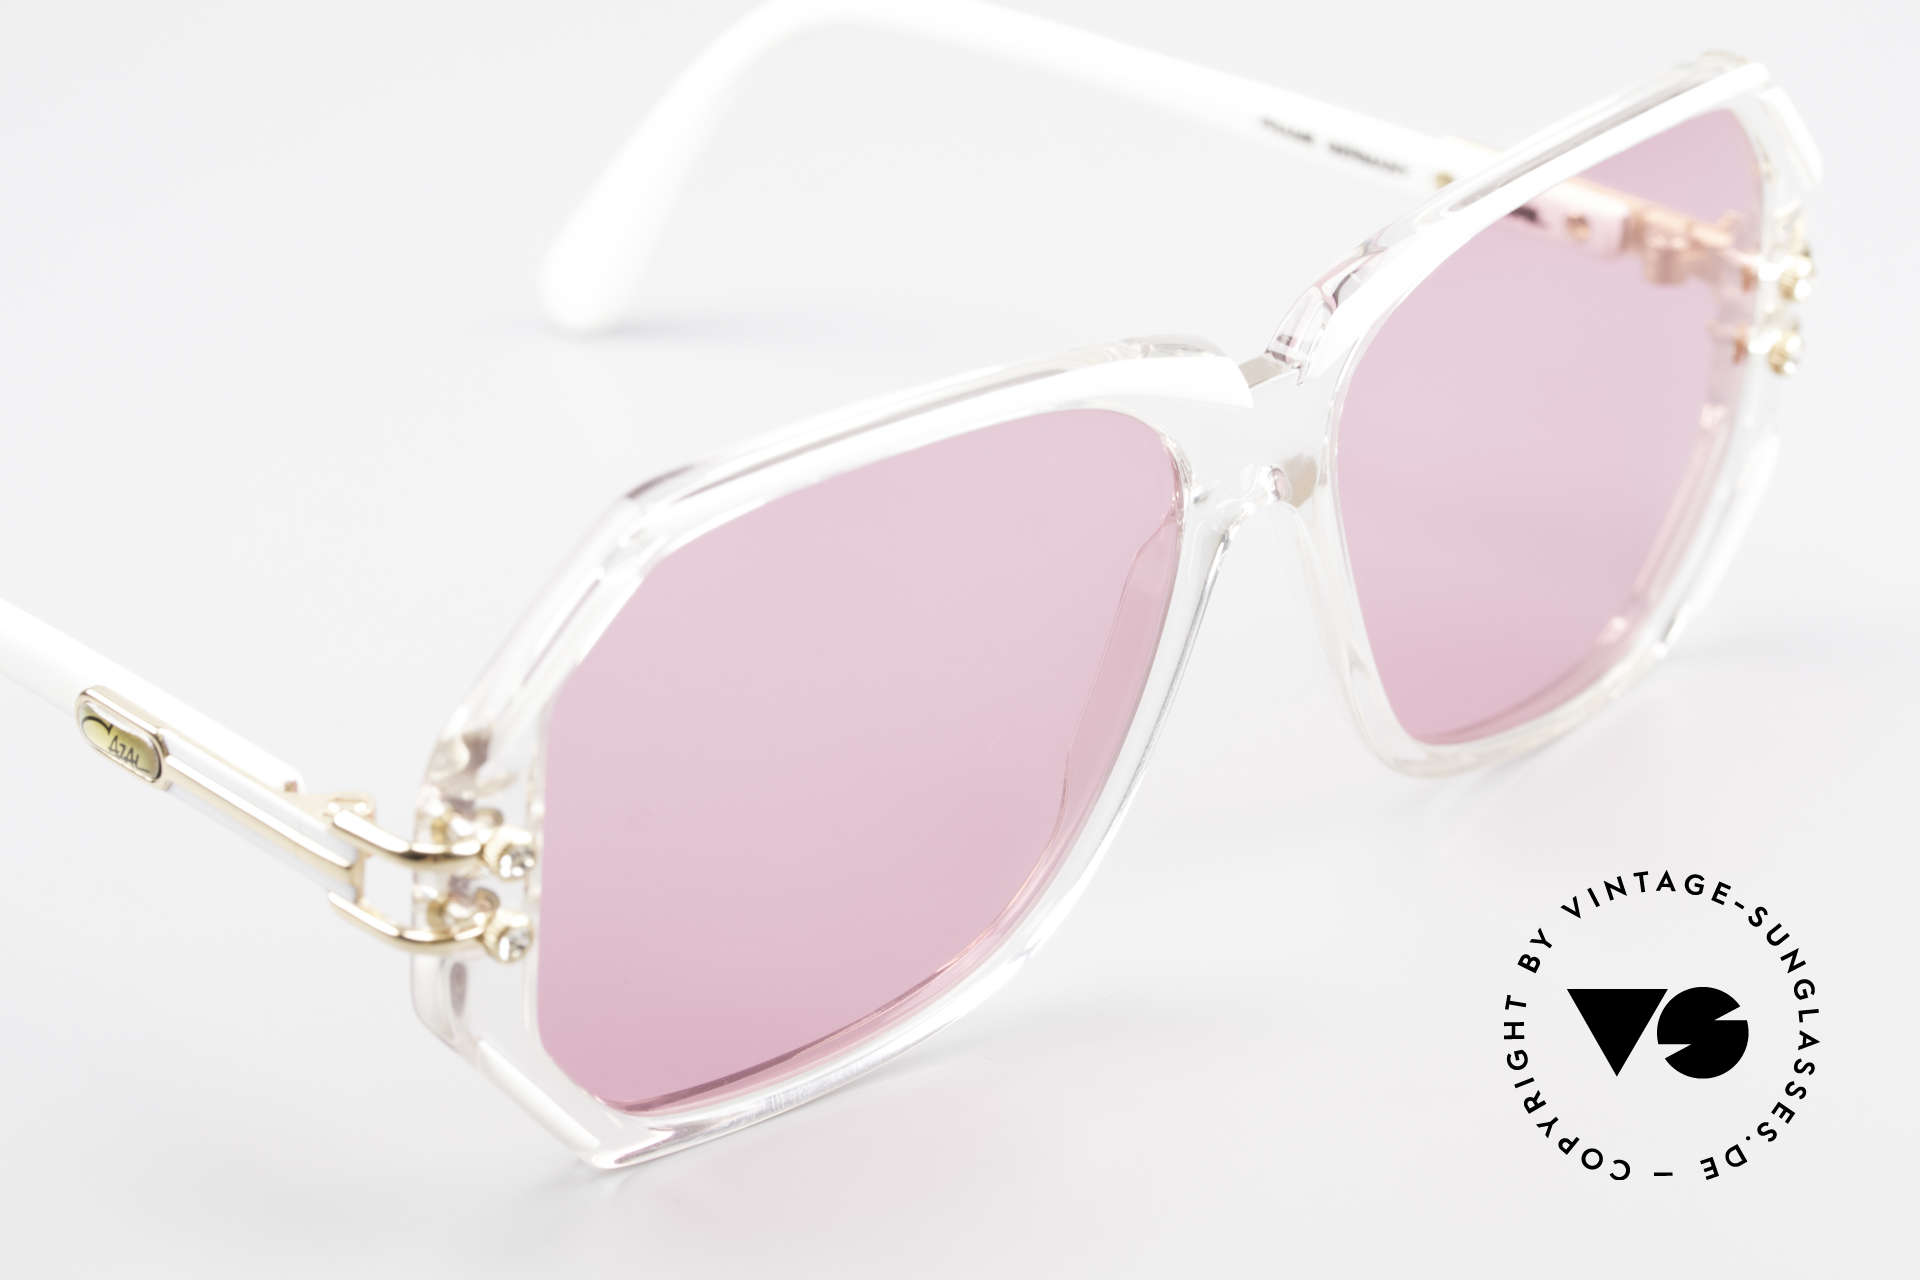 Cazal 169 Pink Vintage Designer Shades, new old stock, NOS (like all our rare vintage Cazals), Made for Women